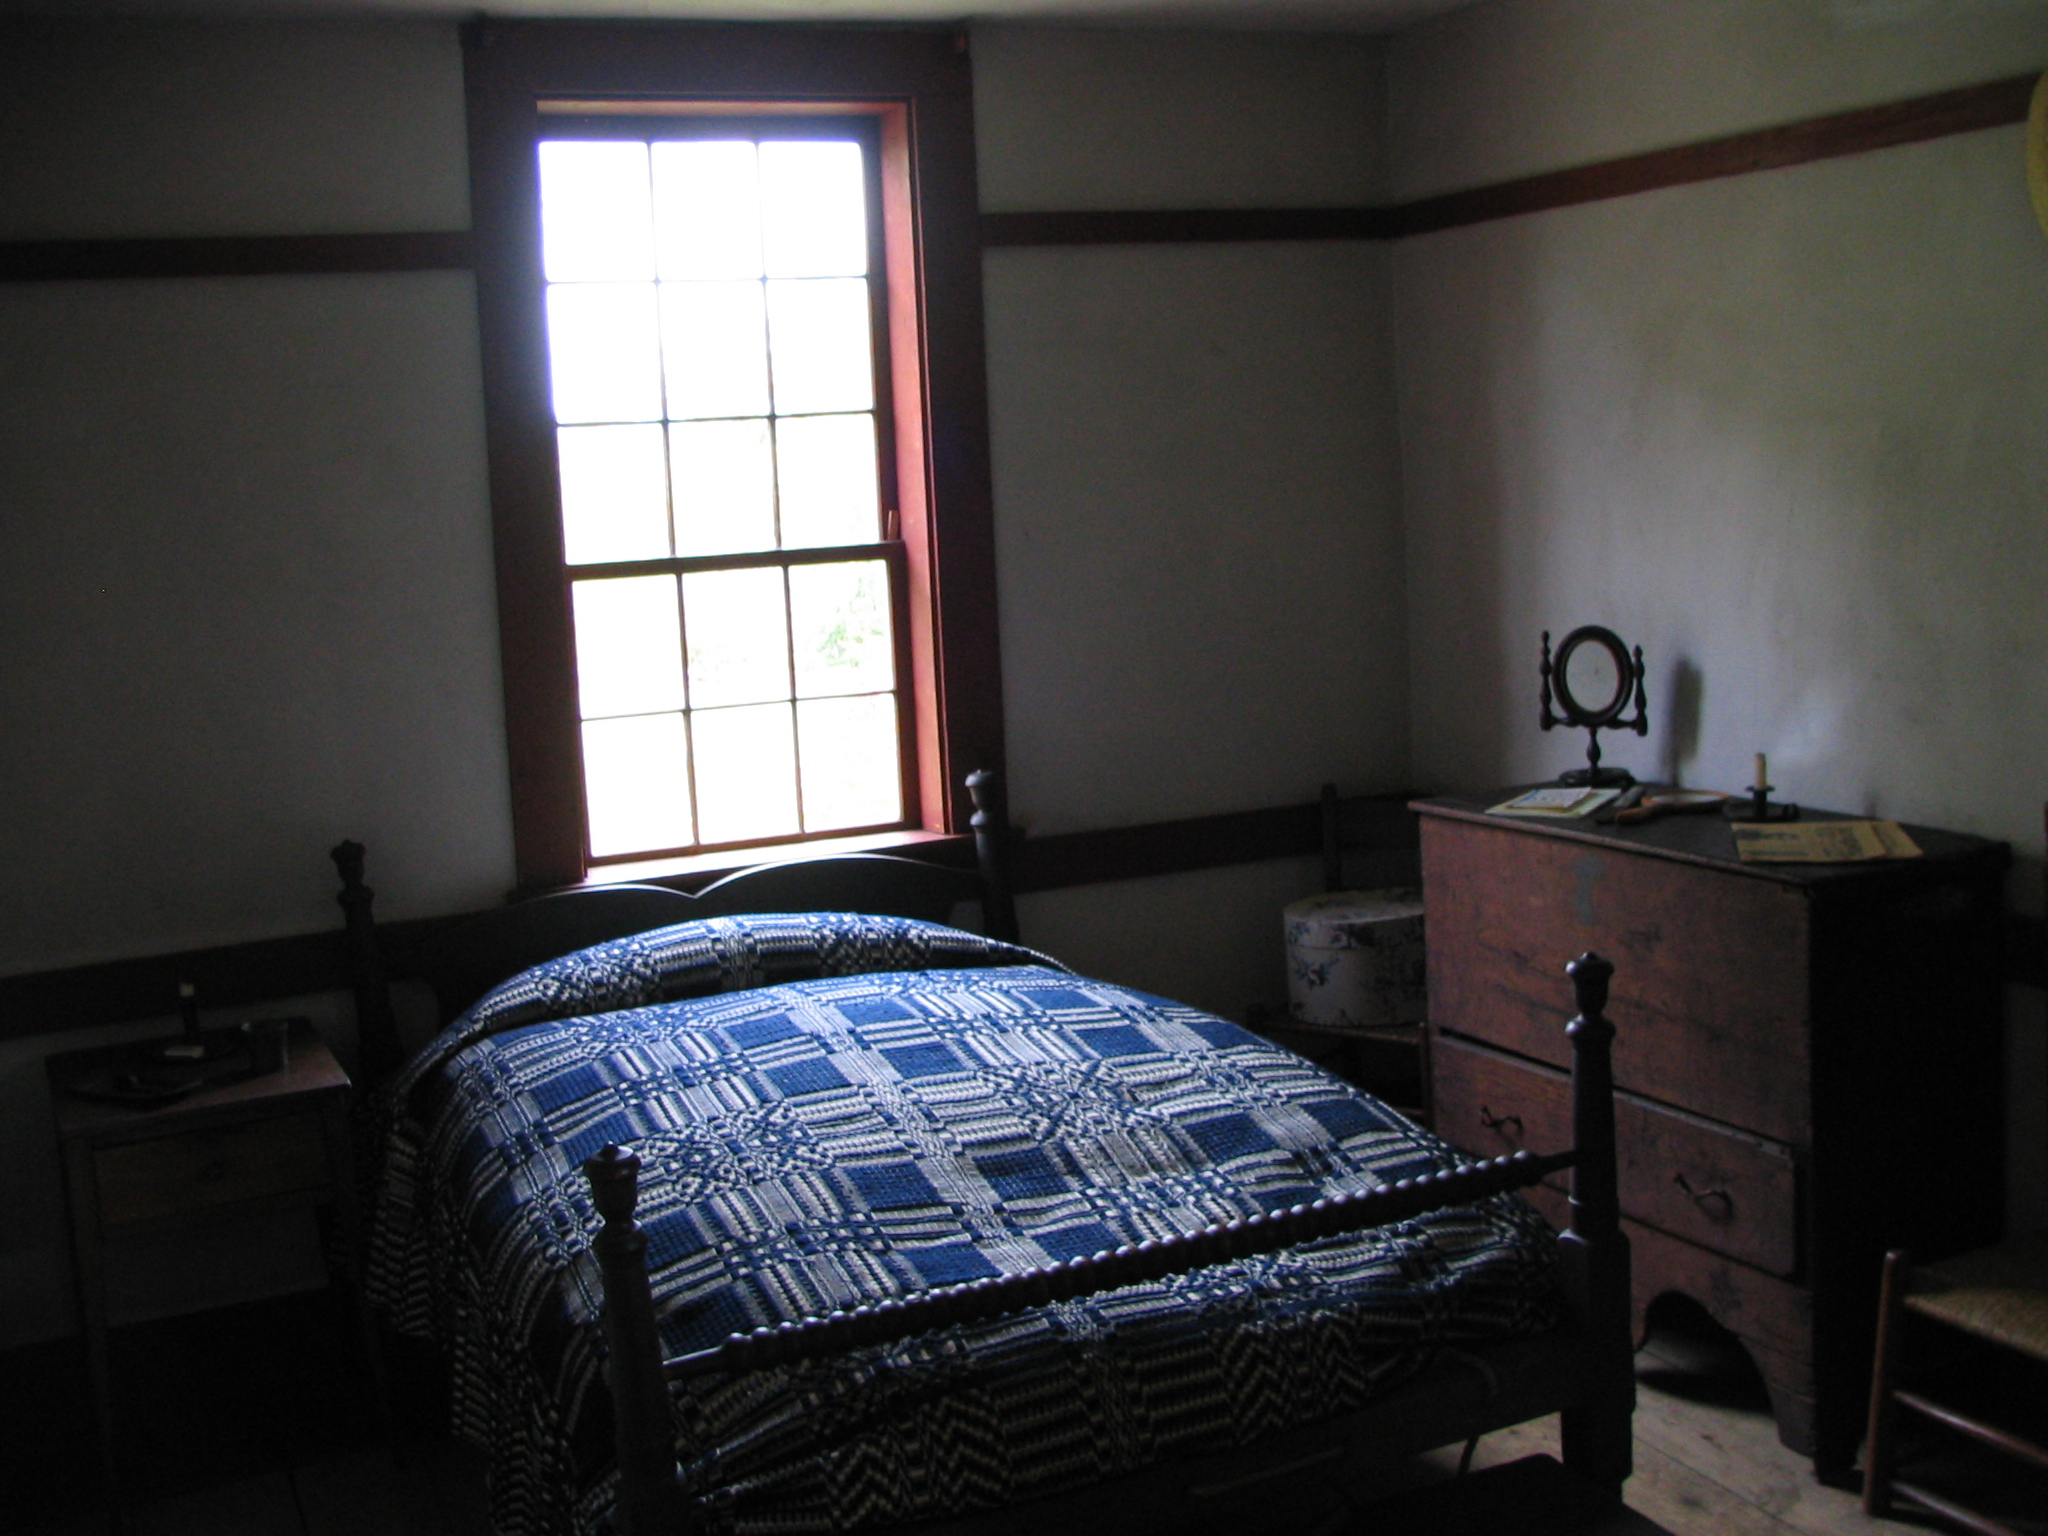 File first floor bedroom in john brown 39 s farm jpg wikimedia commons - Houses bedroom first floor fit needs ...